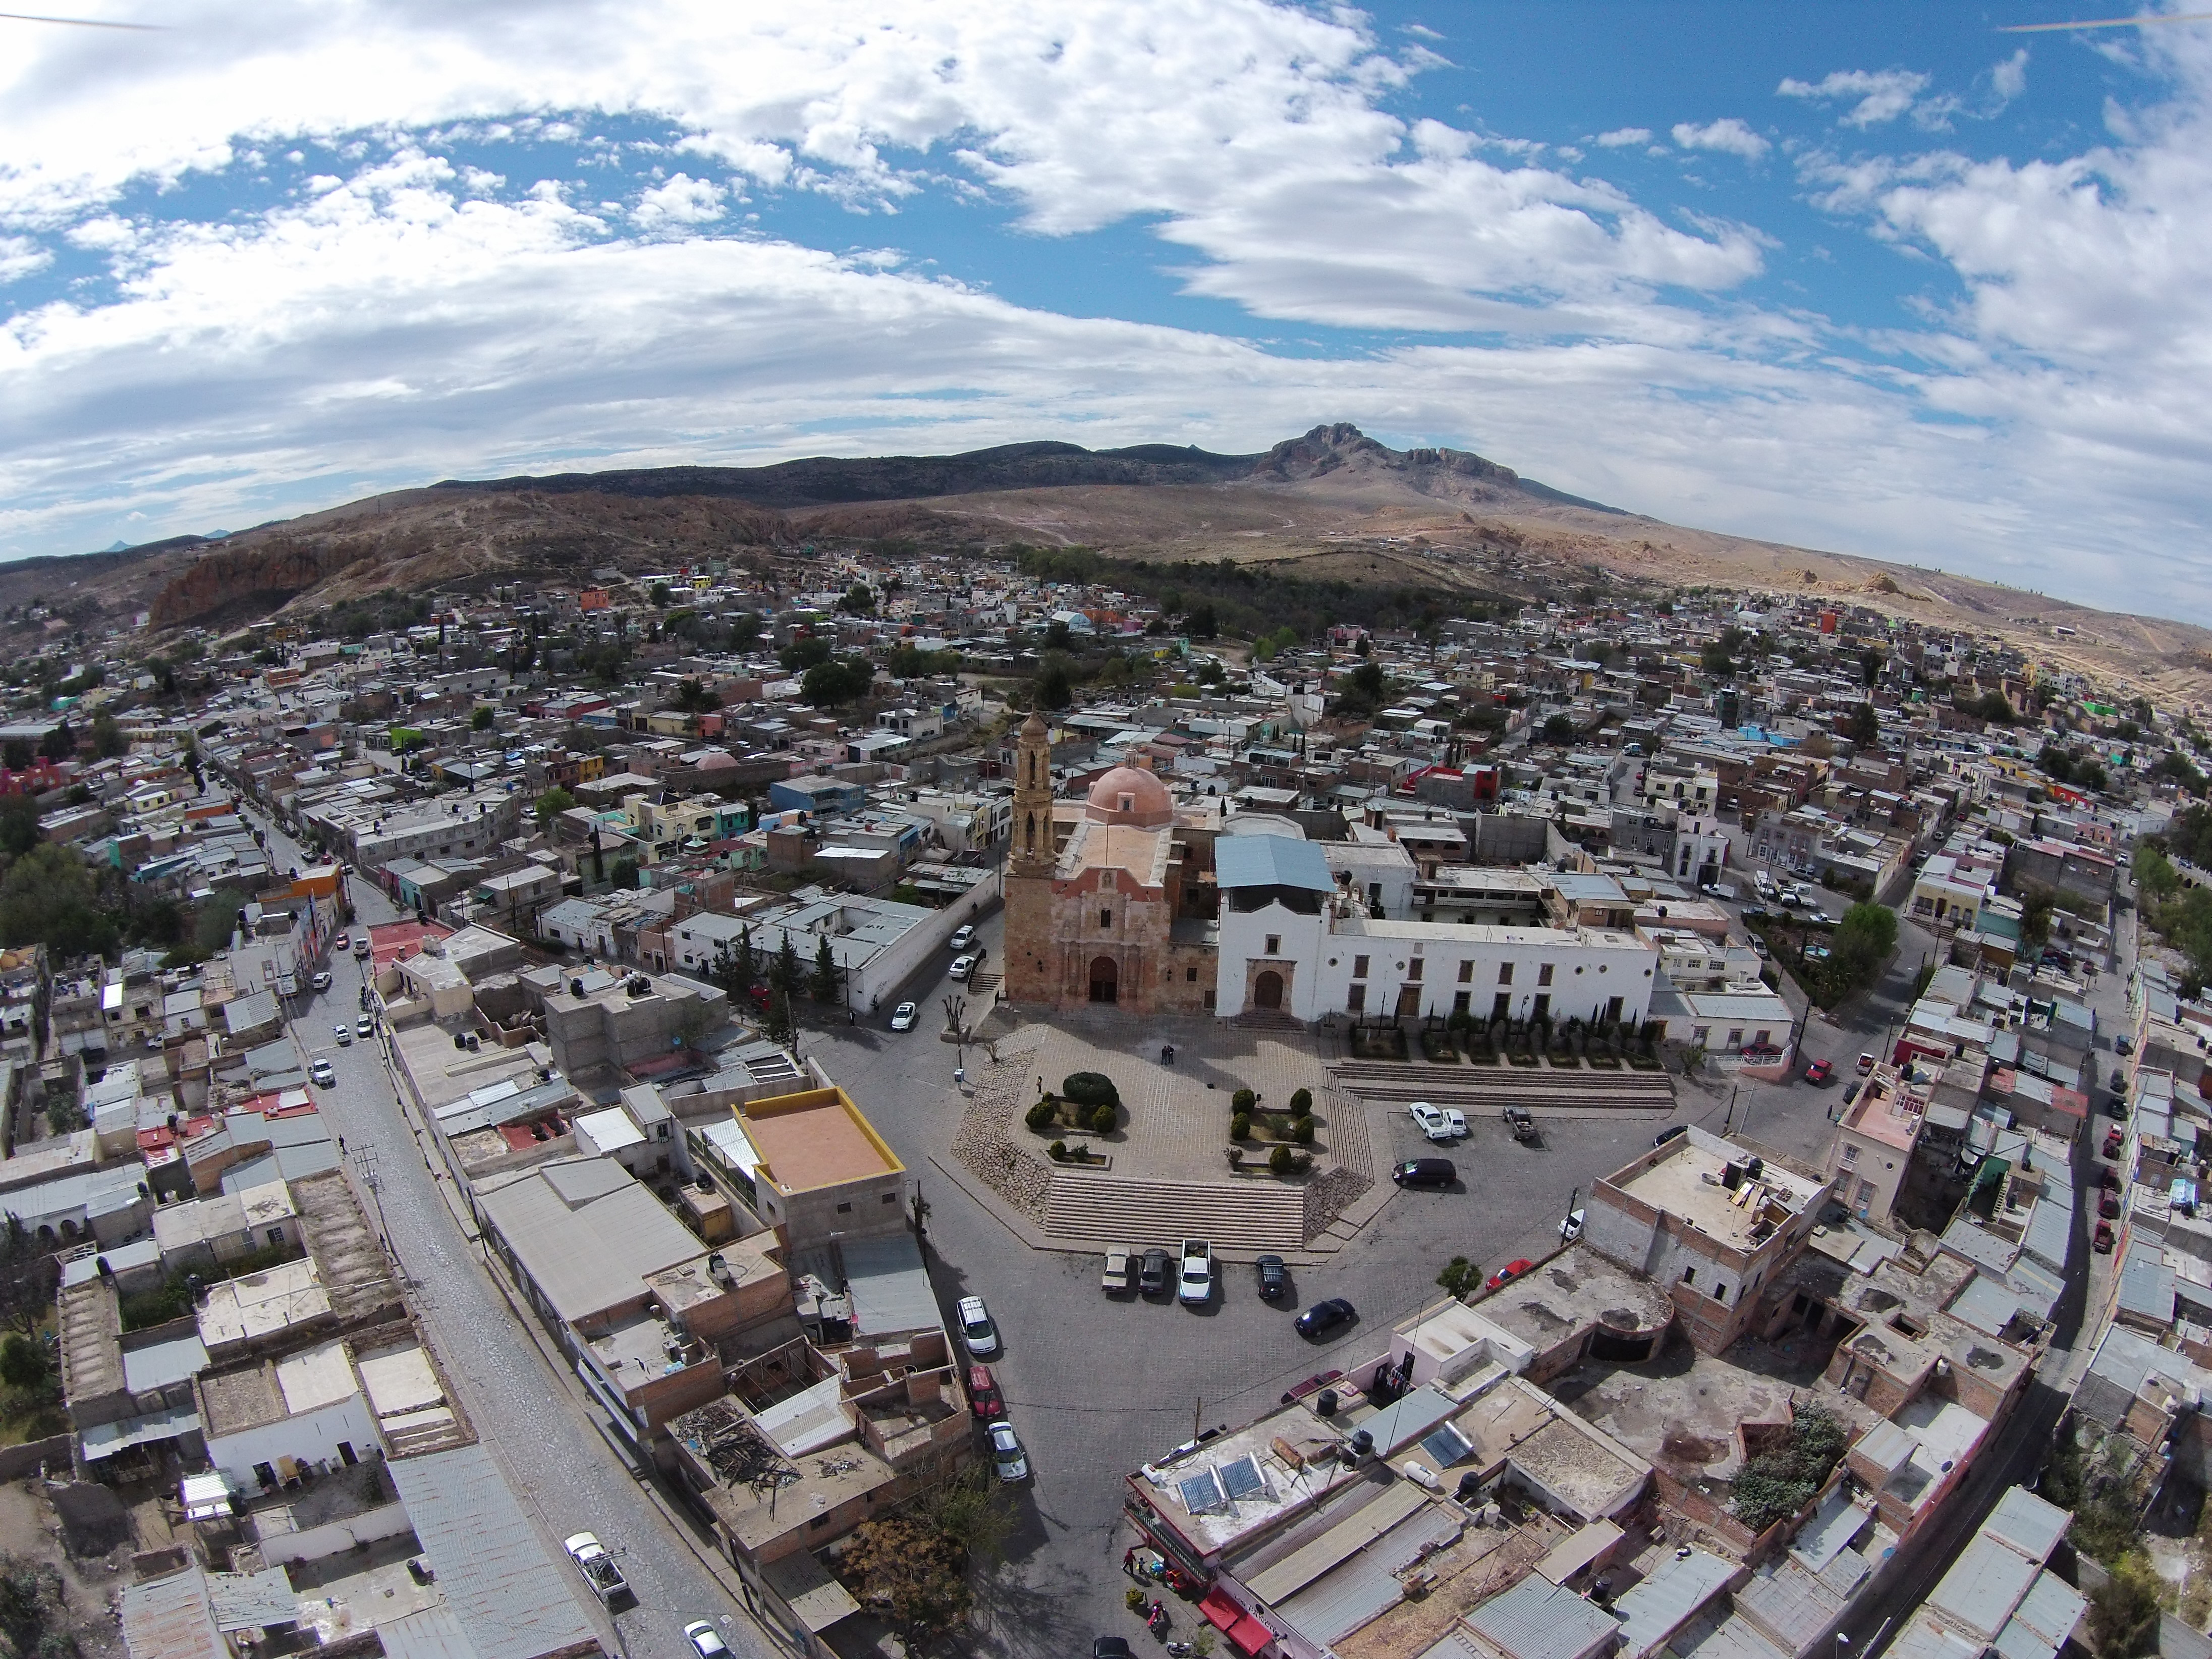 san francisco drone with Sombrerete Zacatecas Mexico 2 on Sombrerete Zacatecas Mexico 2 additionally Terminatorsalvation in addition Twenty Reasons To Visit Rio De Janeiro 2jorb further Wallpaper additionally Drone Photography.